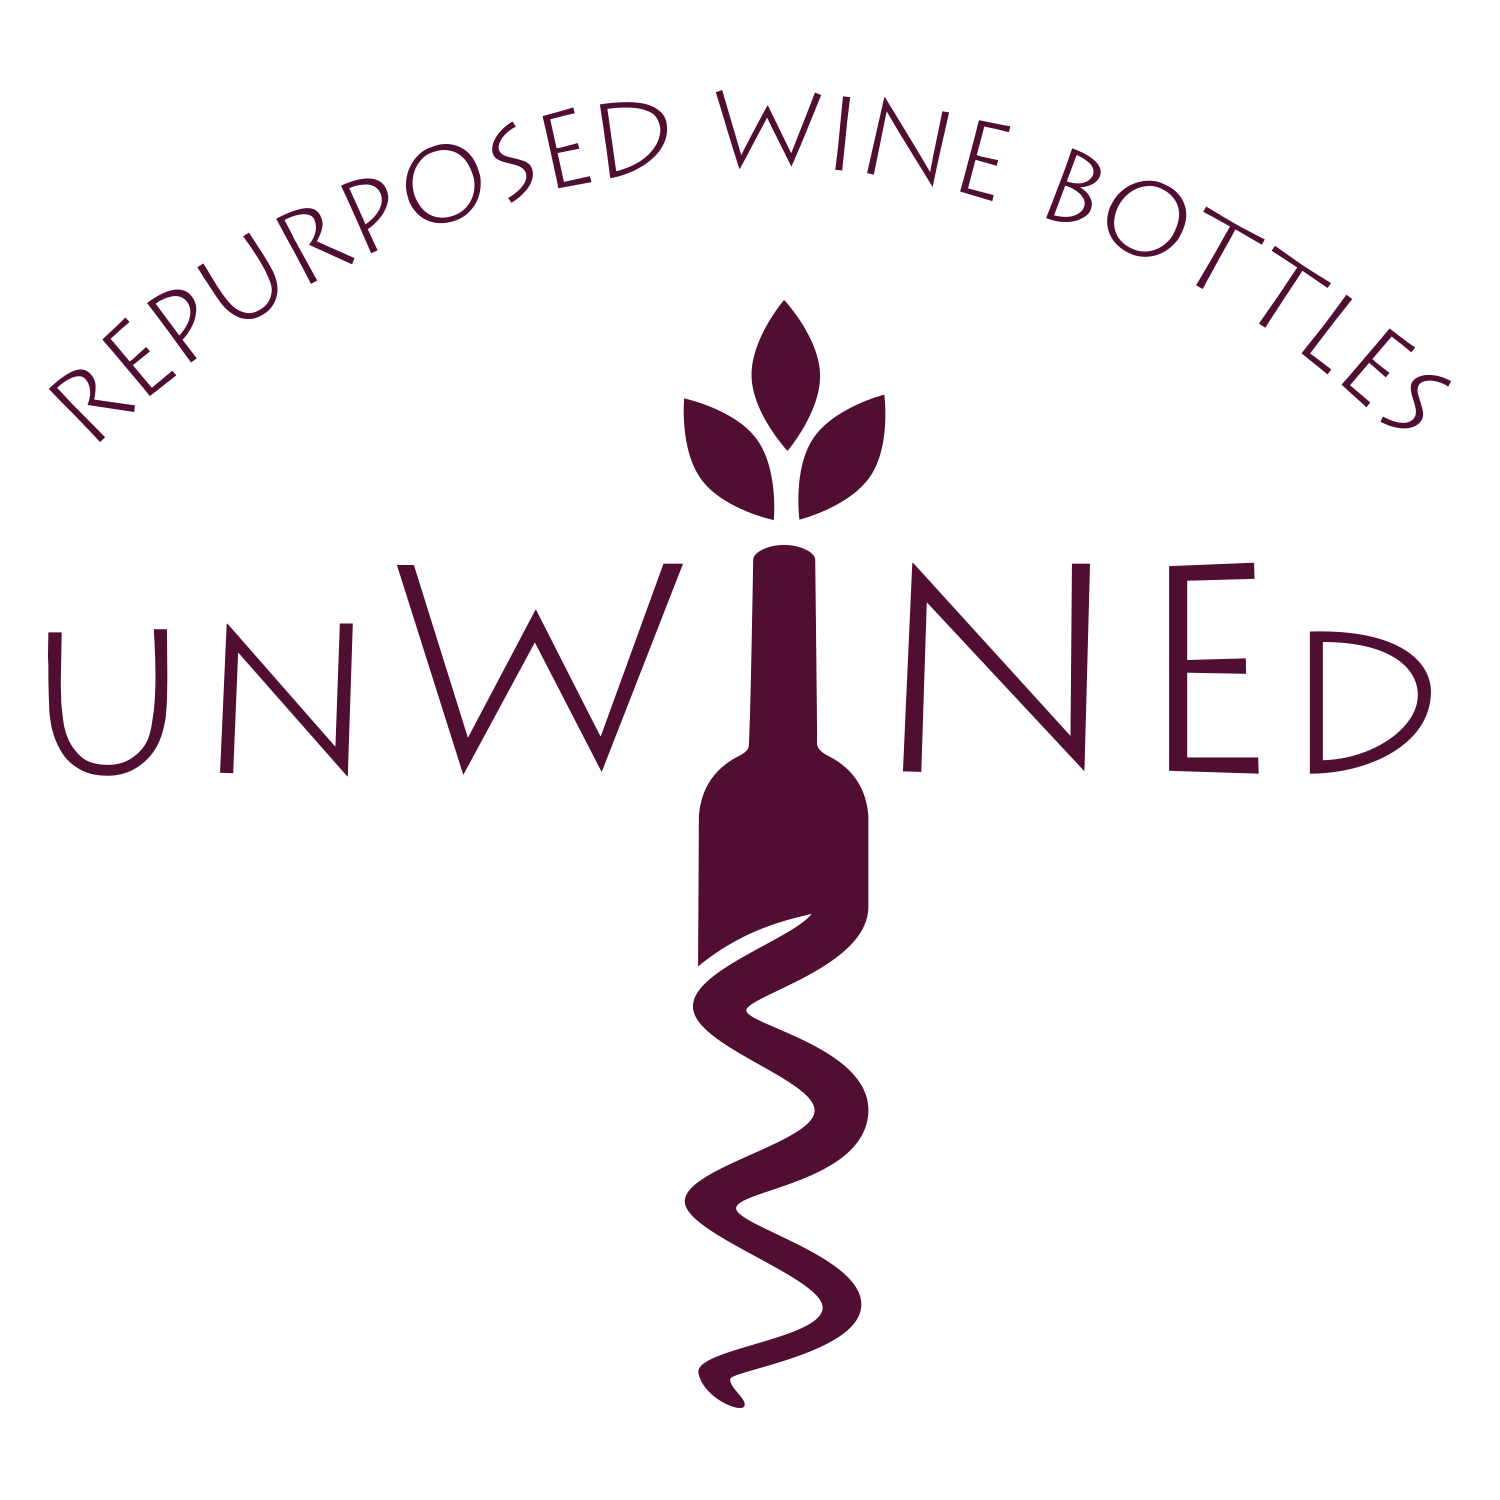 UNWINED BOTTLES